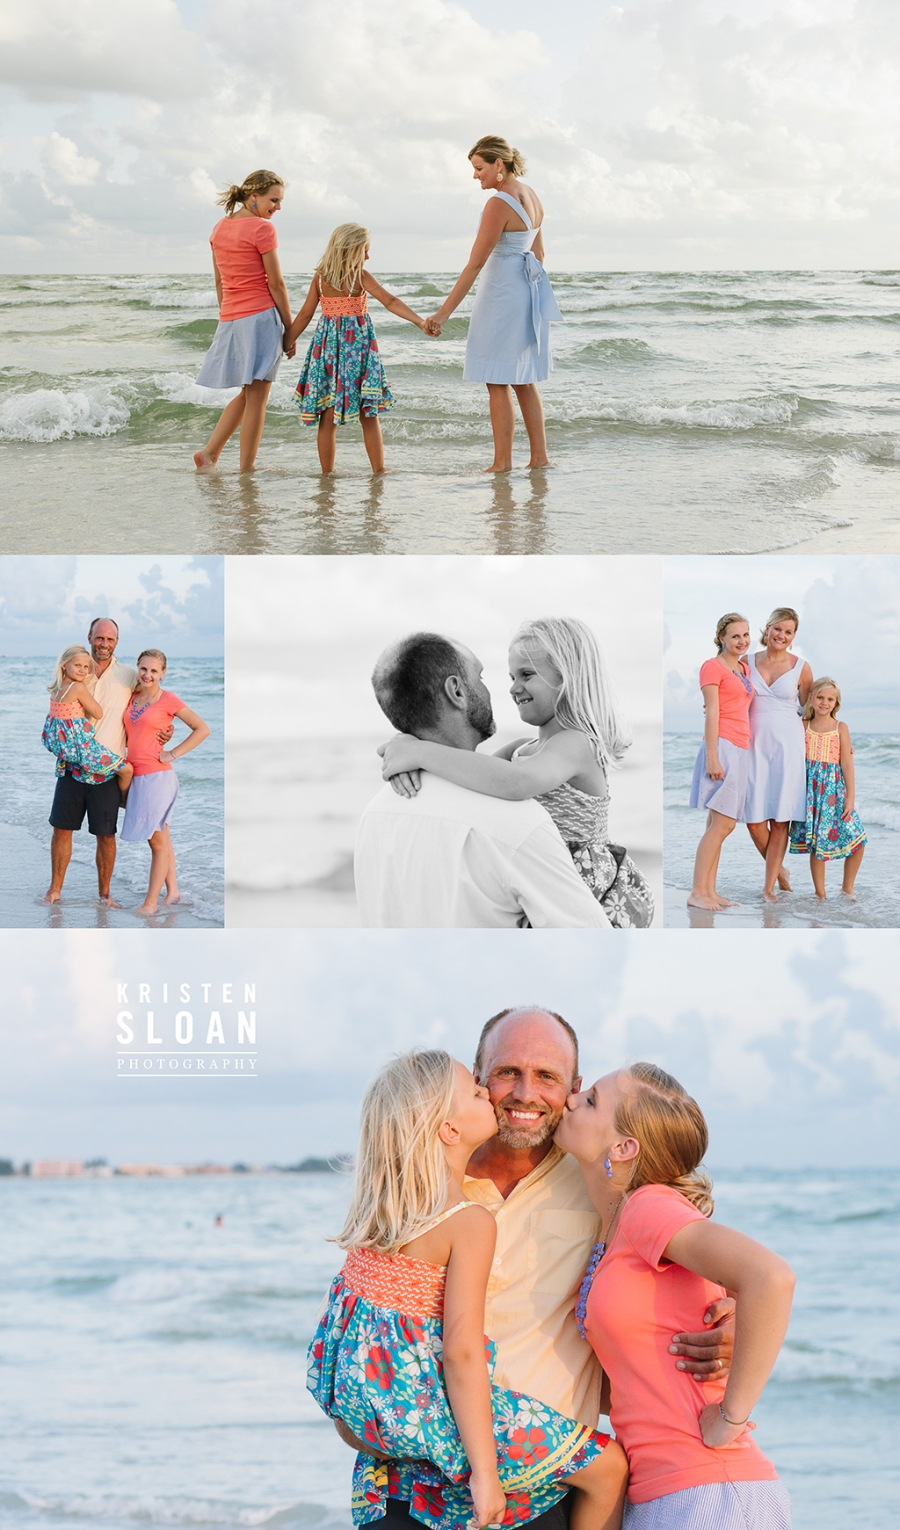 Treasure Island Florida Family Beach Sunset Photos by Kristen Sloan Photo